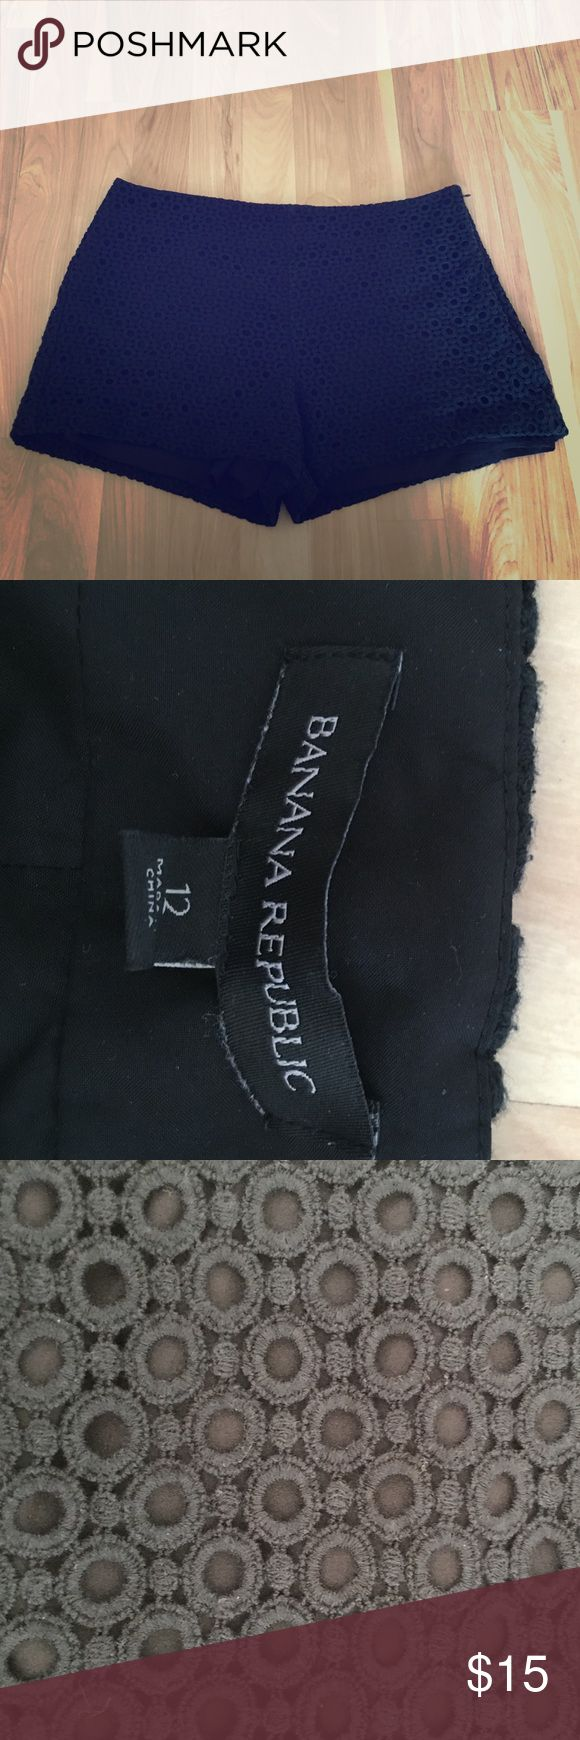 """Banana Republic shorts Banana Republic shorts black crochet.  Shorts measure 12"""" total length with 3"""" inseam Banana Republic Shorts"""